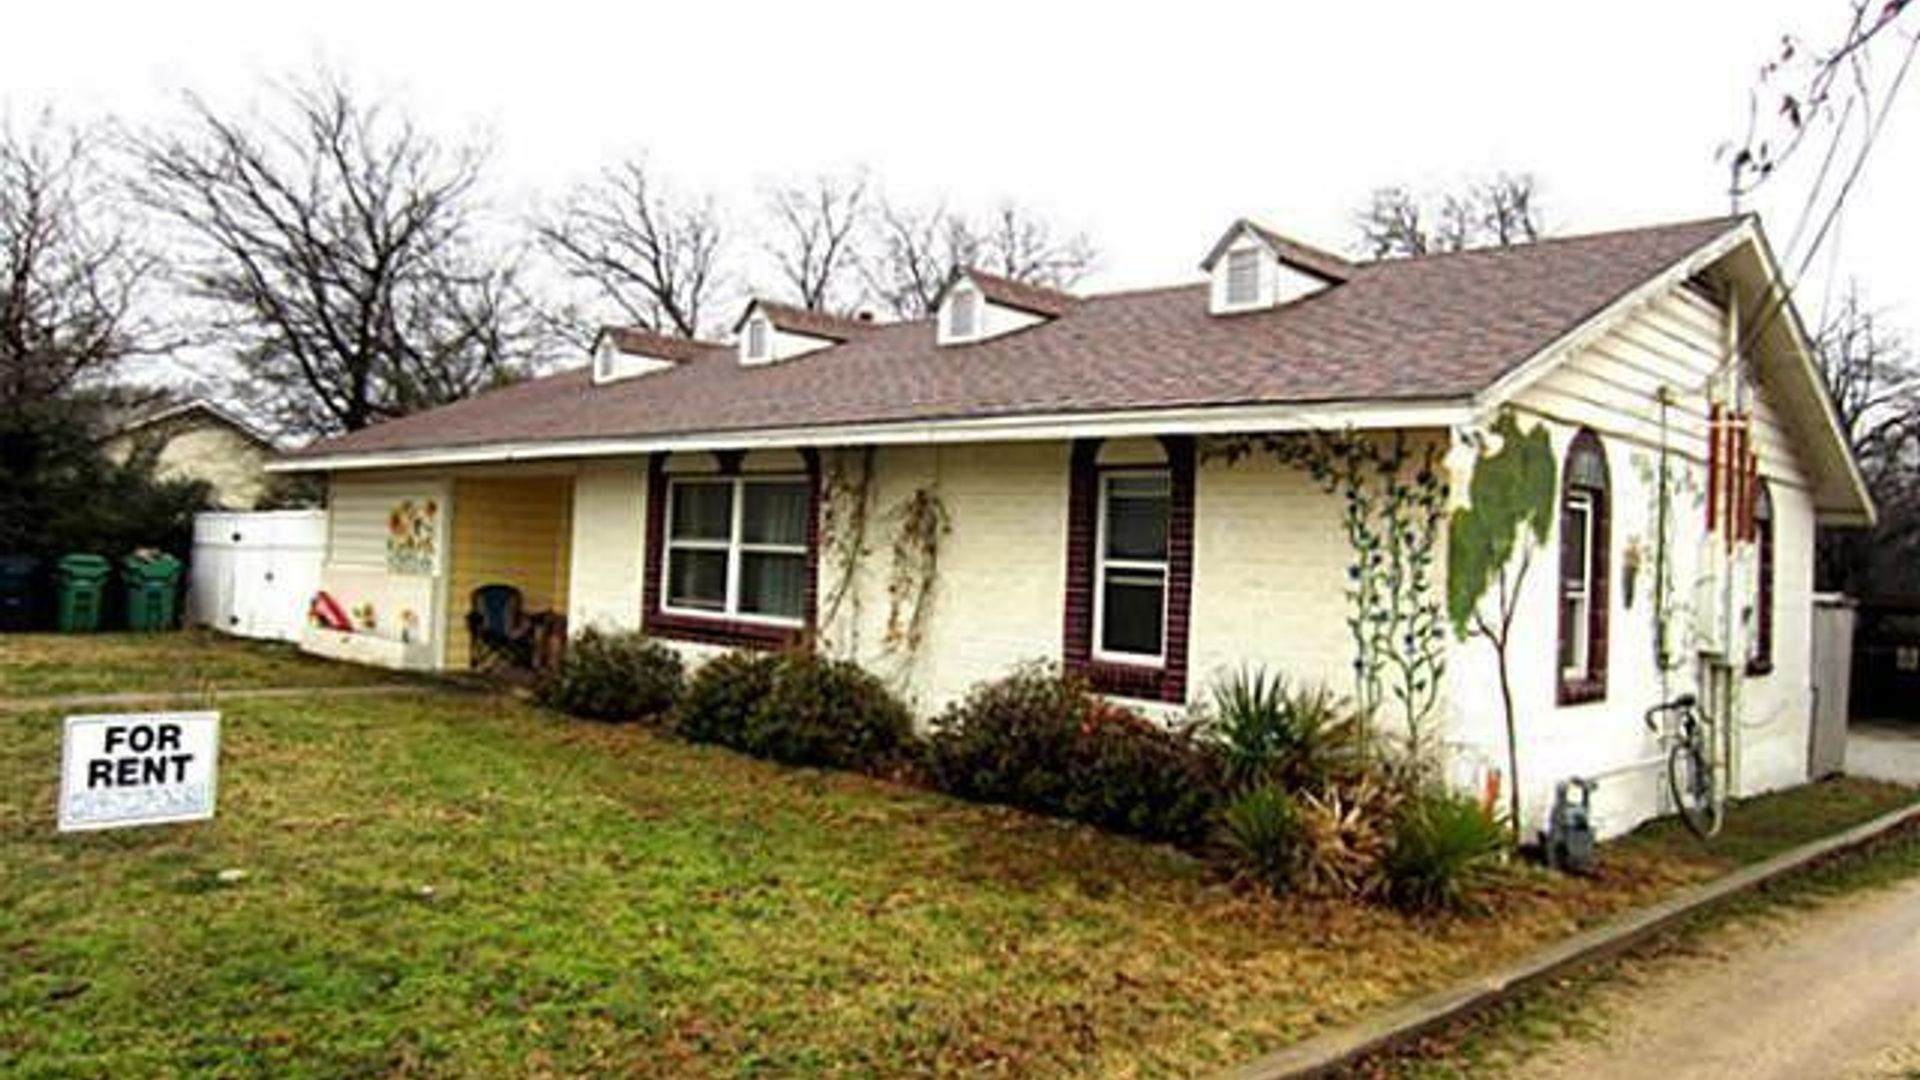 2 bed house at 1037 South Welch Street, Denton, TX 76201 ...